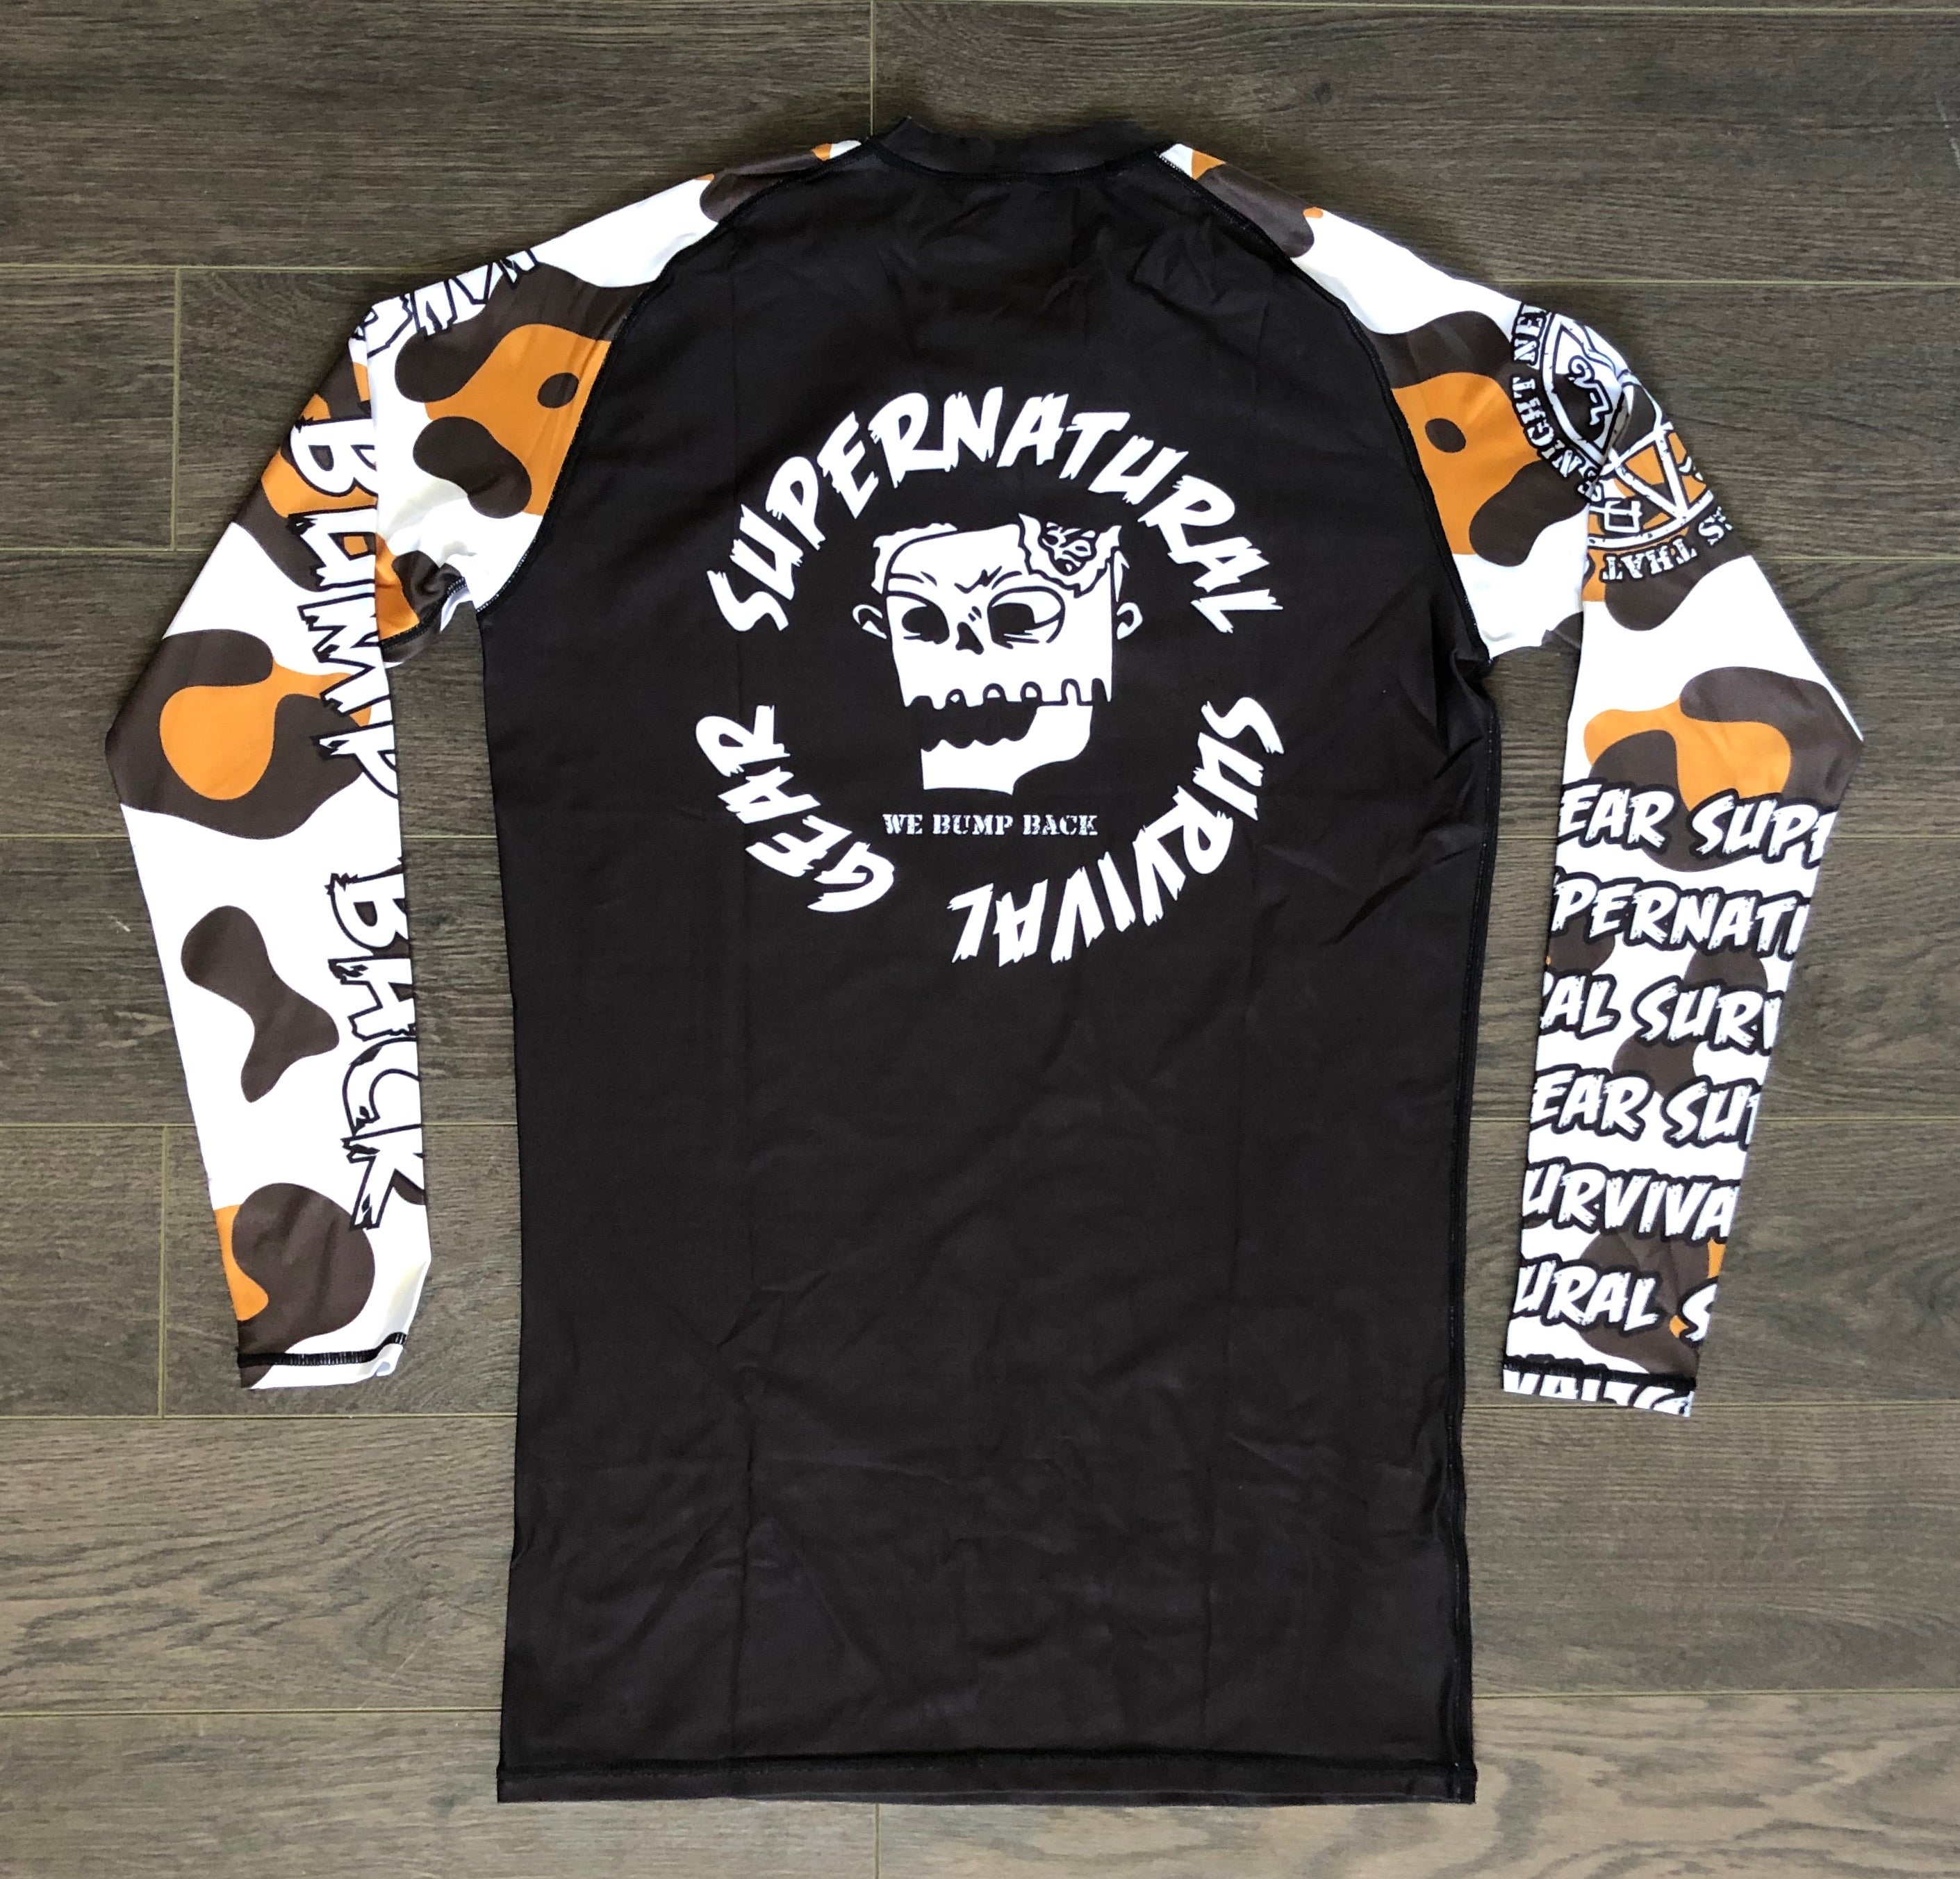 Snow Leopard V2 Rashguard (Long-sleeve)